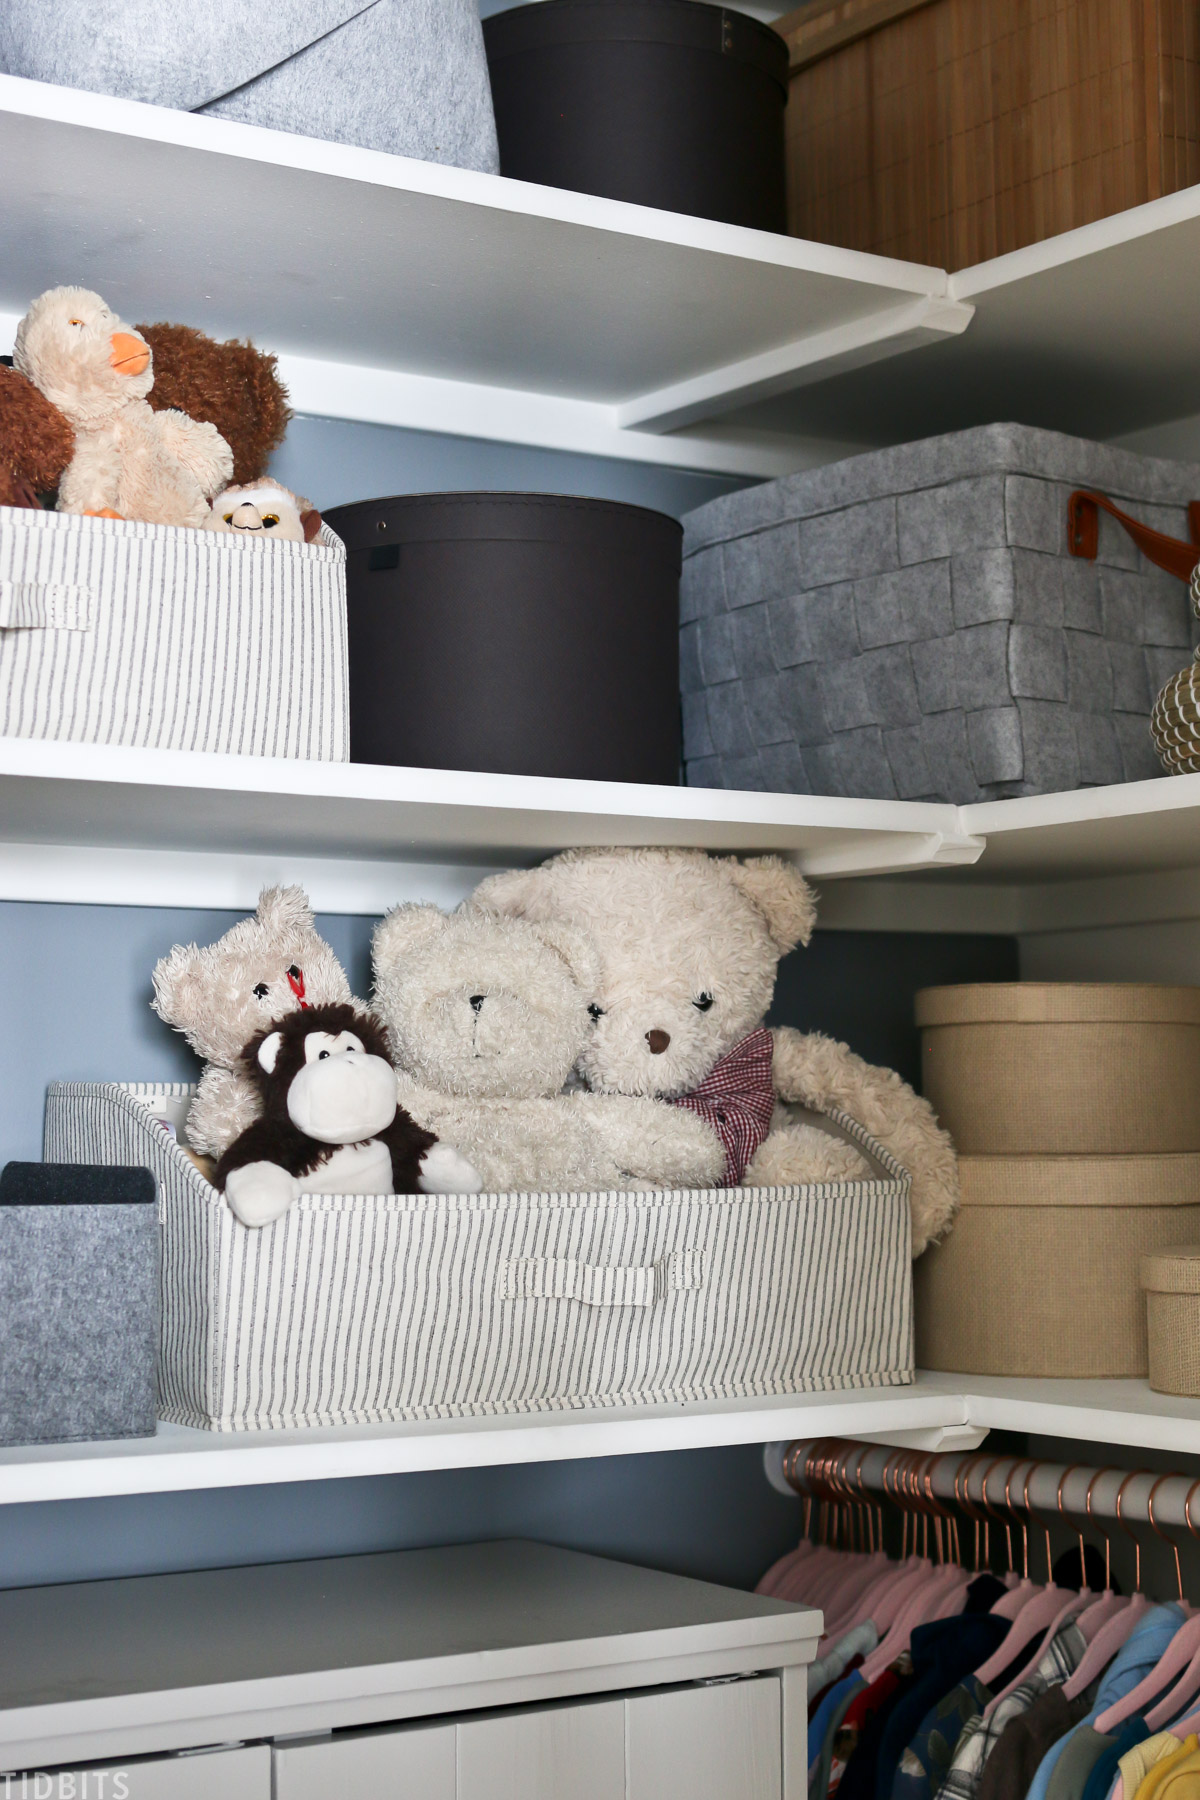 baskets filled with stuffed teddy bears on a shelf within a closet